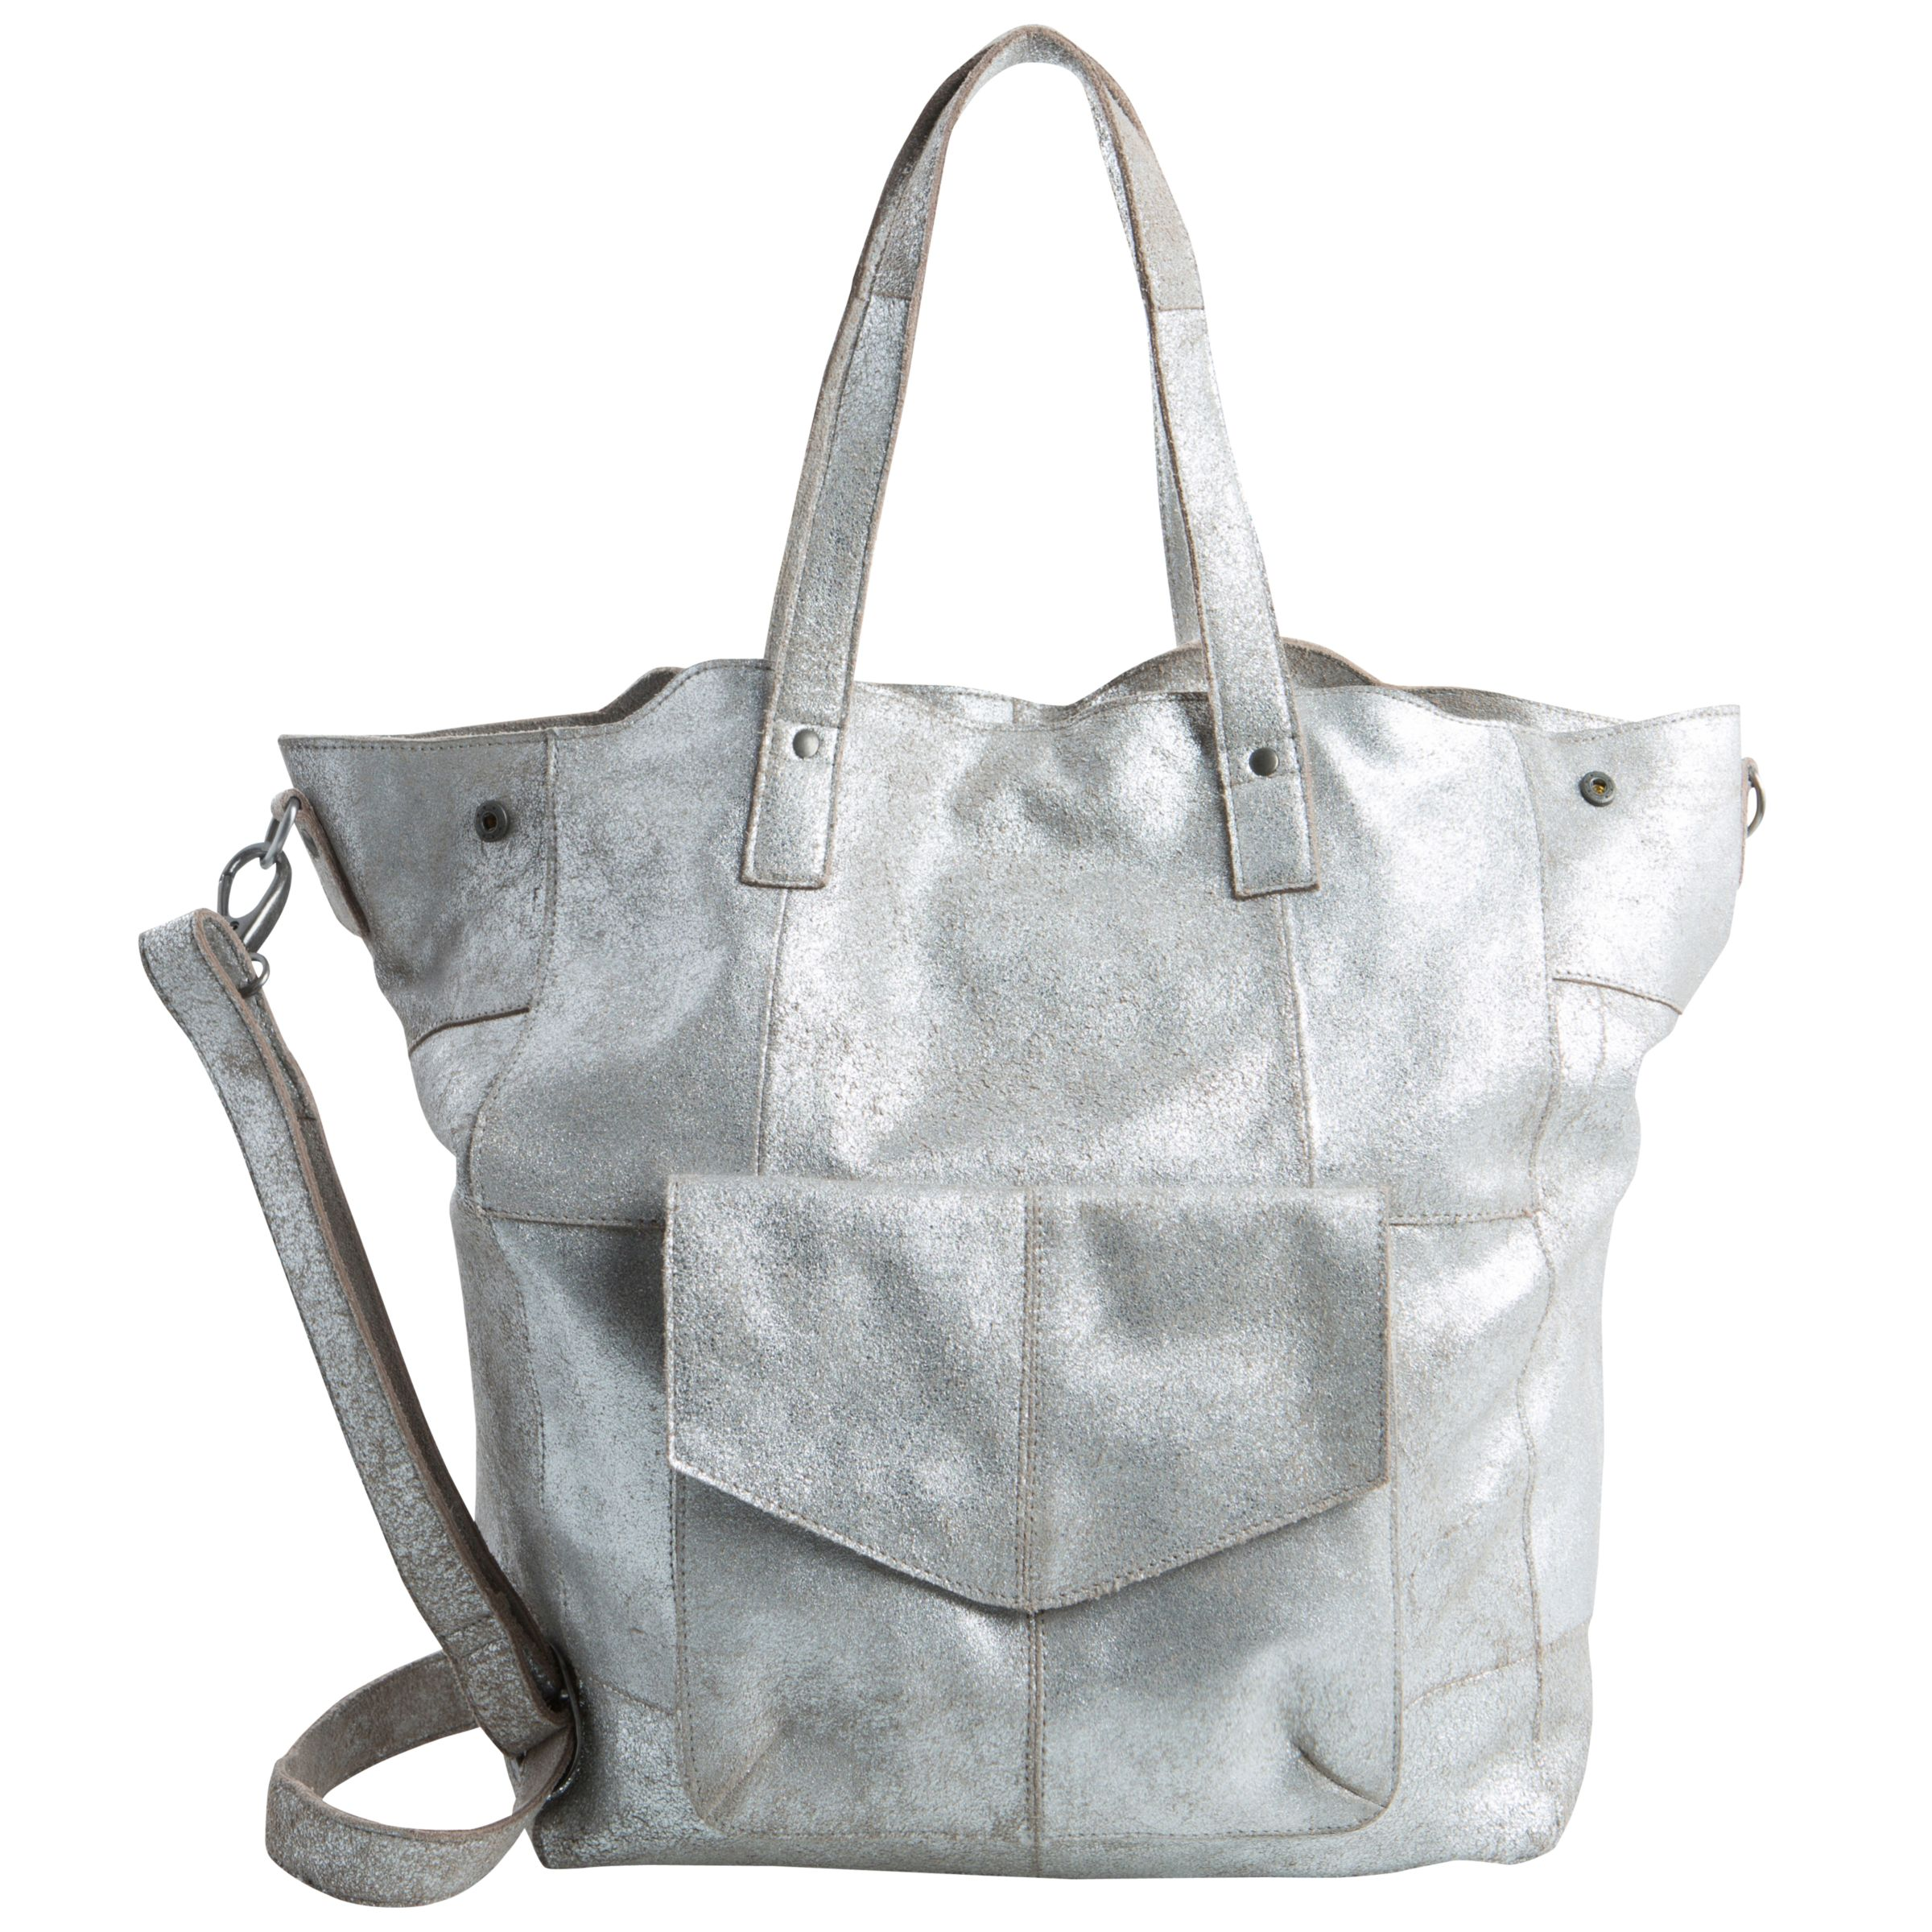 Pieces Pieces Vanity Leather Tote Bag, Silver